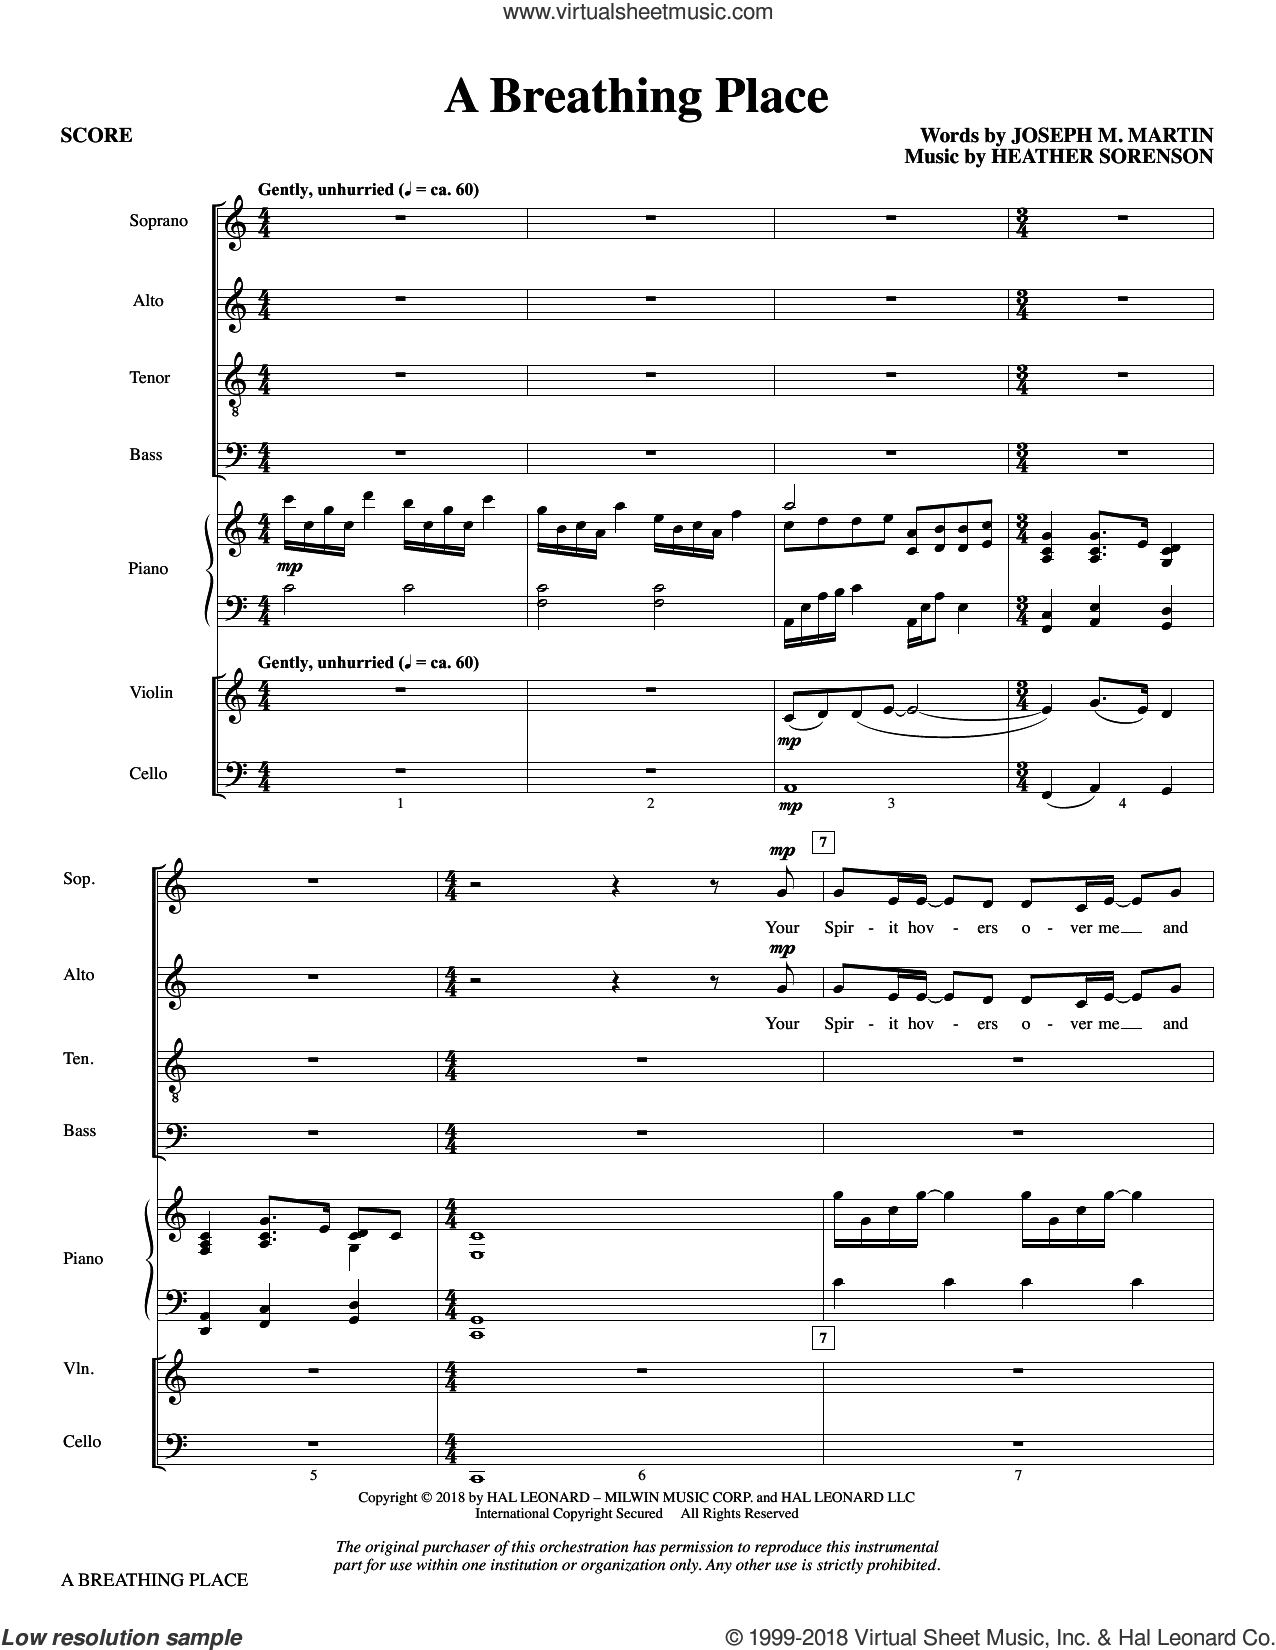 A Breathing Place (COMPLETE) sheet music for orchestra/band by Joseph M. Martin & Heather Sorenson, Heather Sorenson and Joseph M. Martin, intermediate skill level